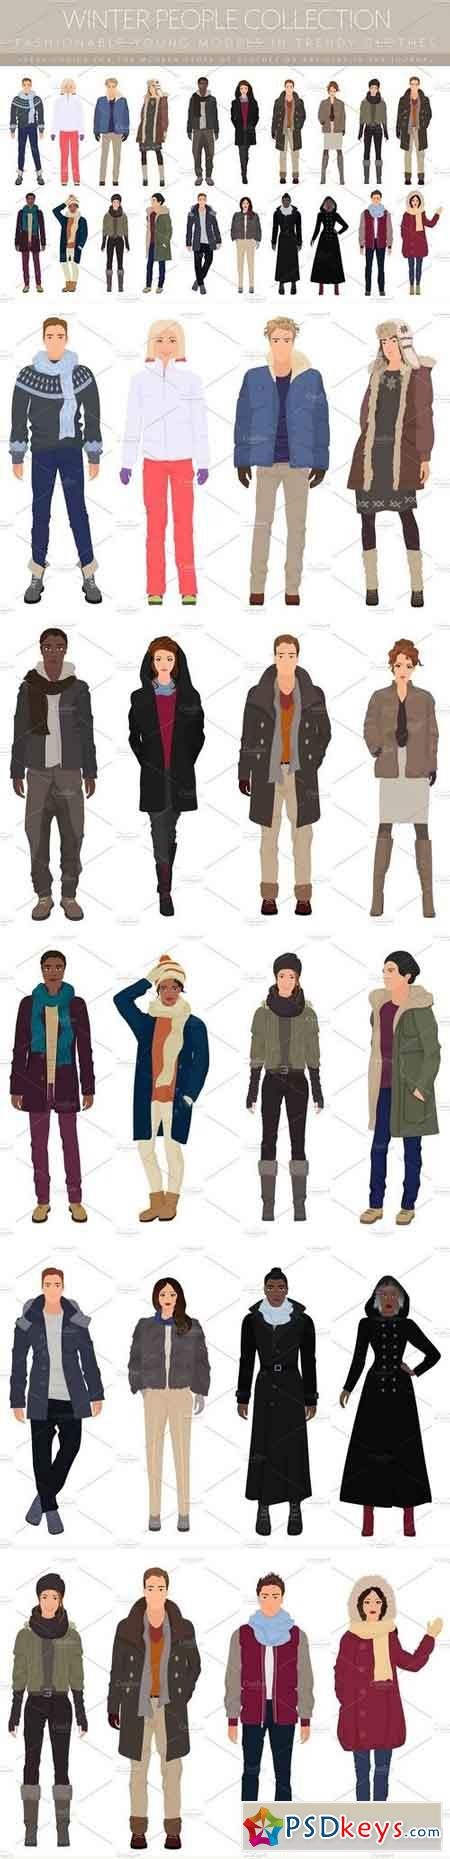 Fashionable winter people collection 1497989